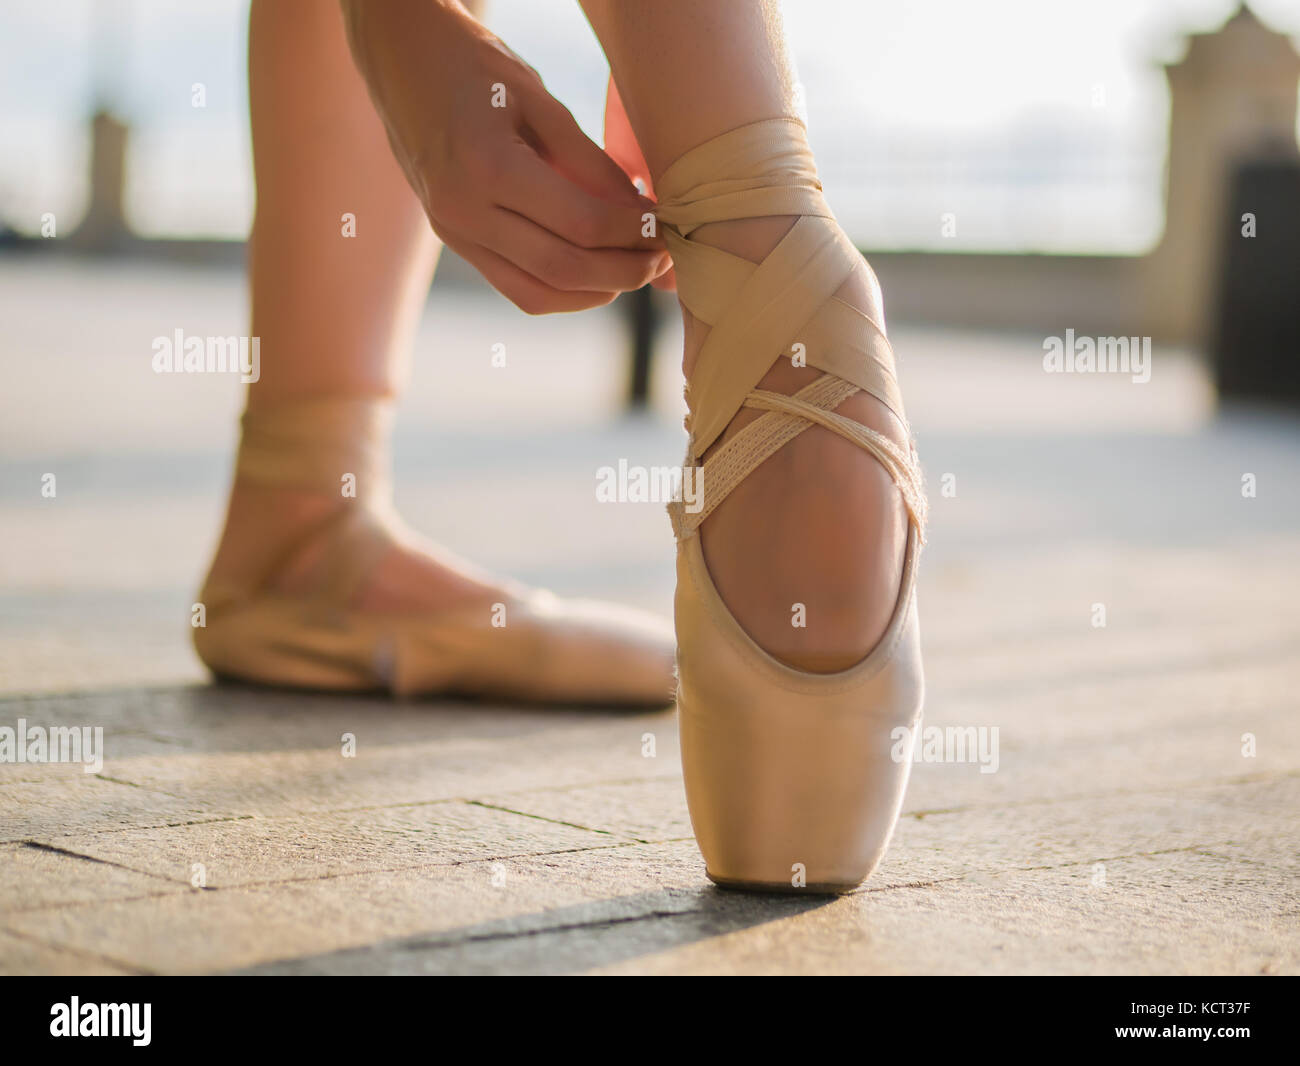 Close Up Of A Ballet Dancer S Feet As She Practices Pointe Exercises Stock Photo Alamy